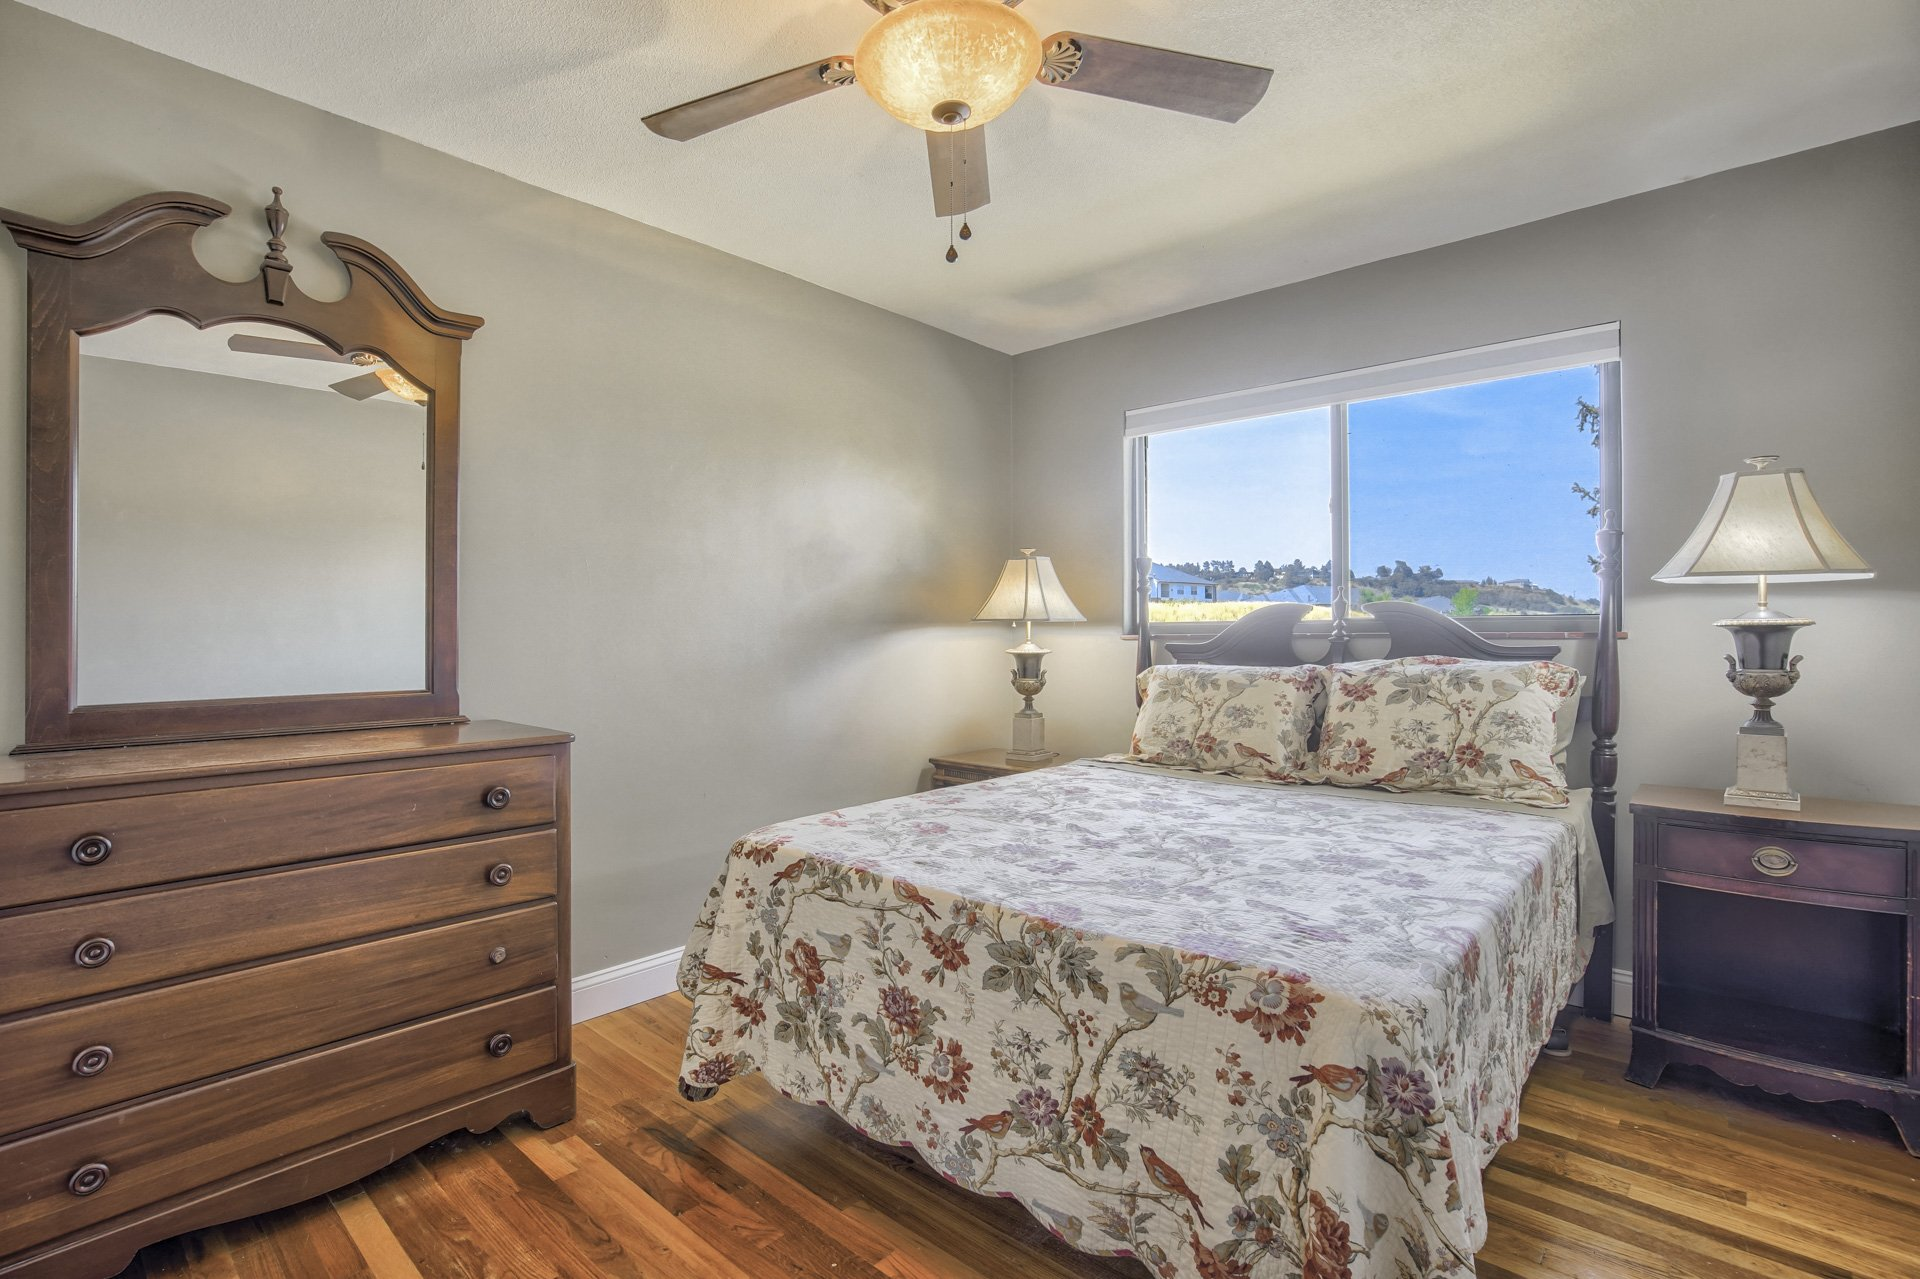 bed and dresser in room with wood floors